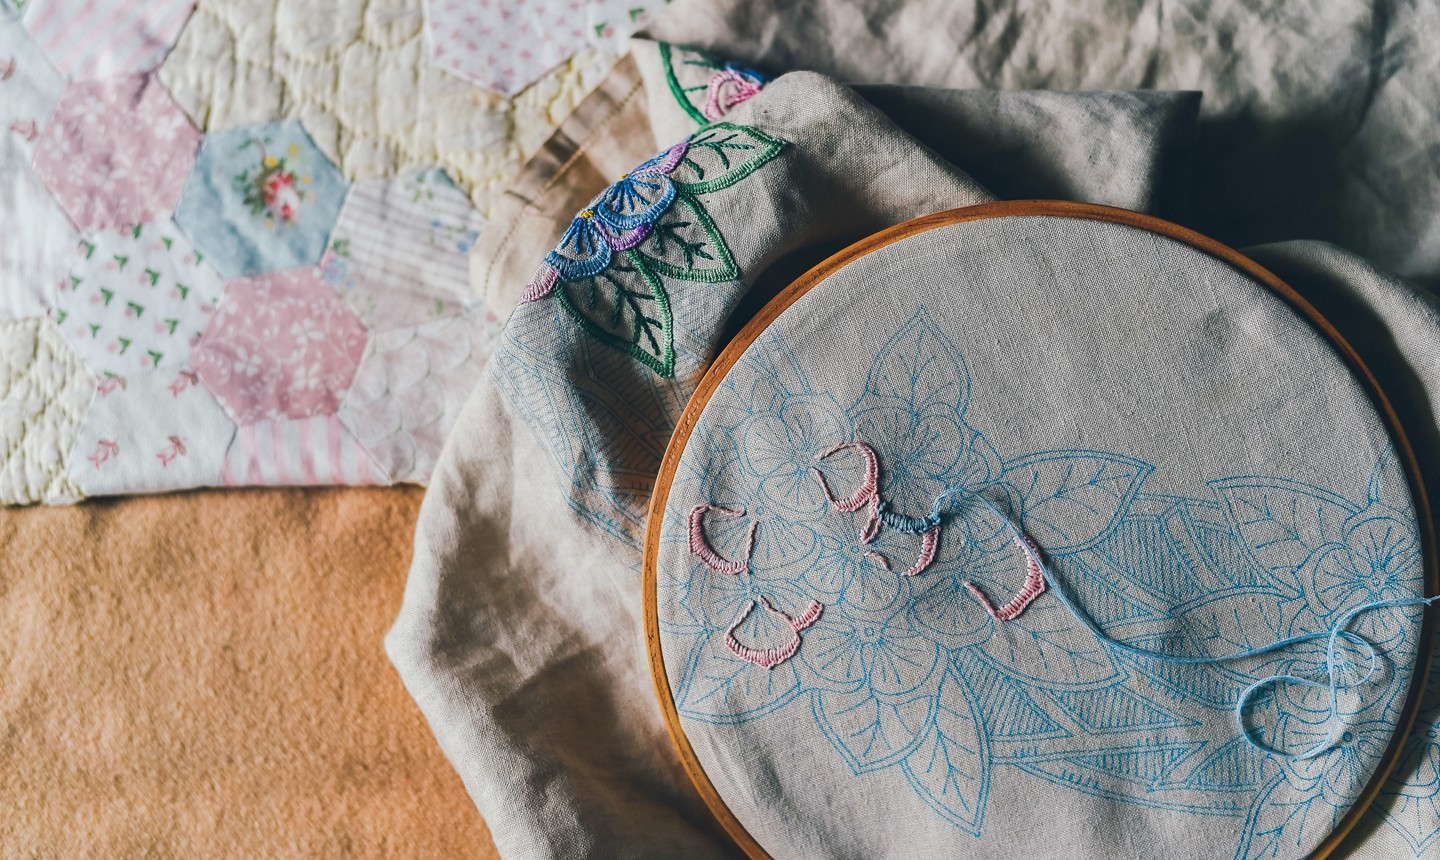 Stamped Embroidery Patterns 5 Simple Ways To Transfer Embroidery Designs